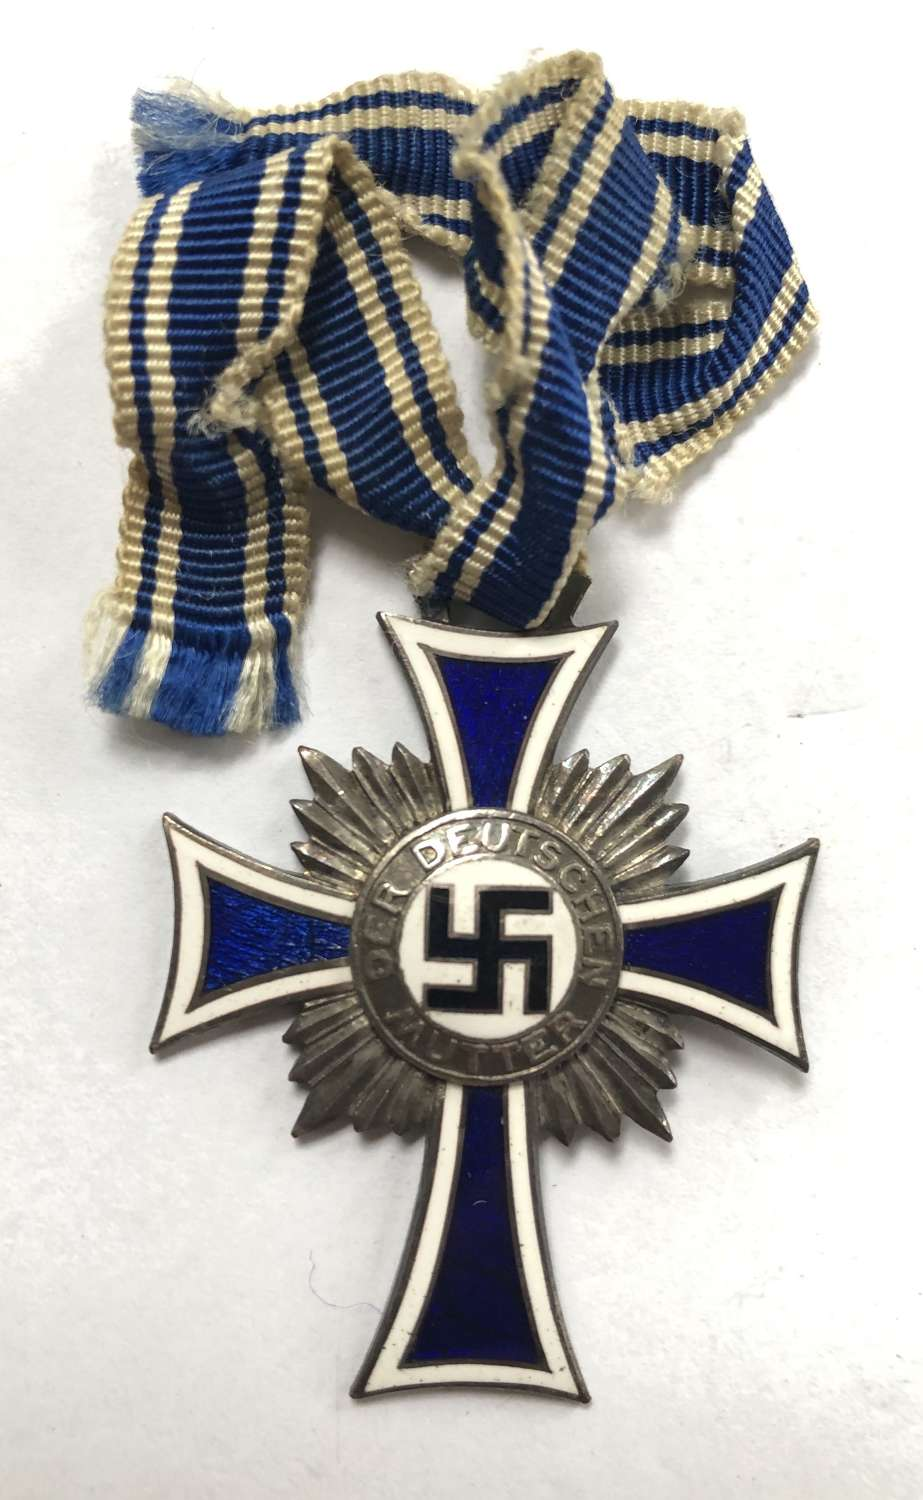 German Third Reich Mother's Cross 2nd Class circa 1938-45